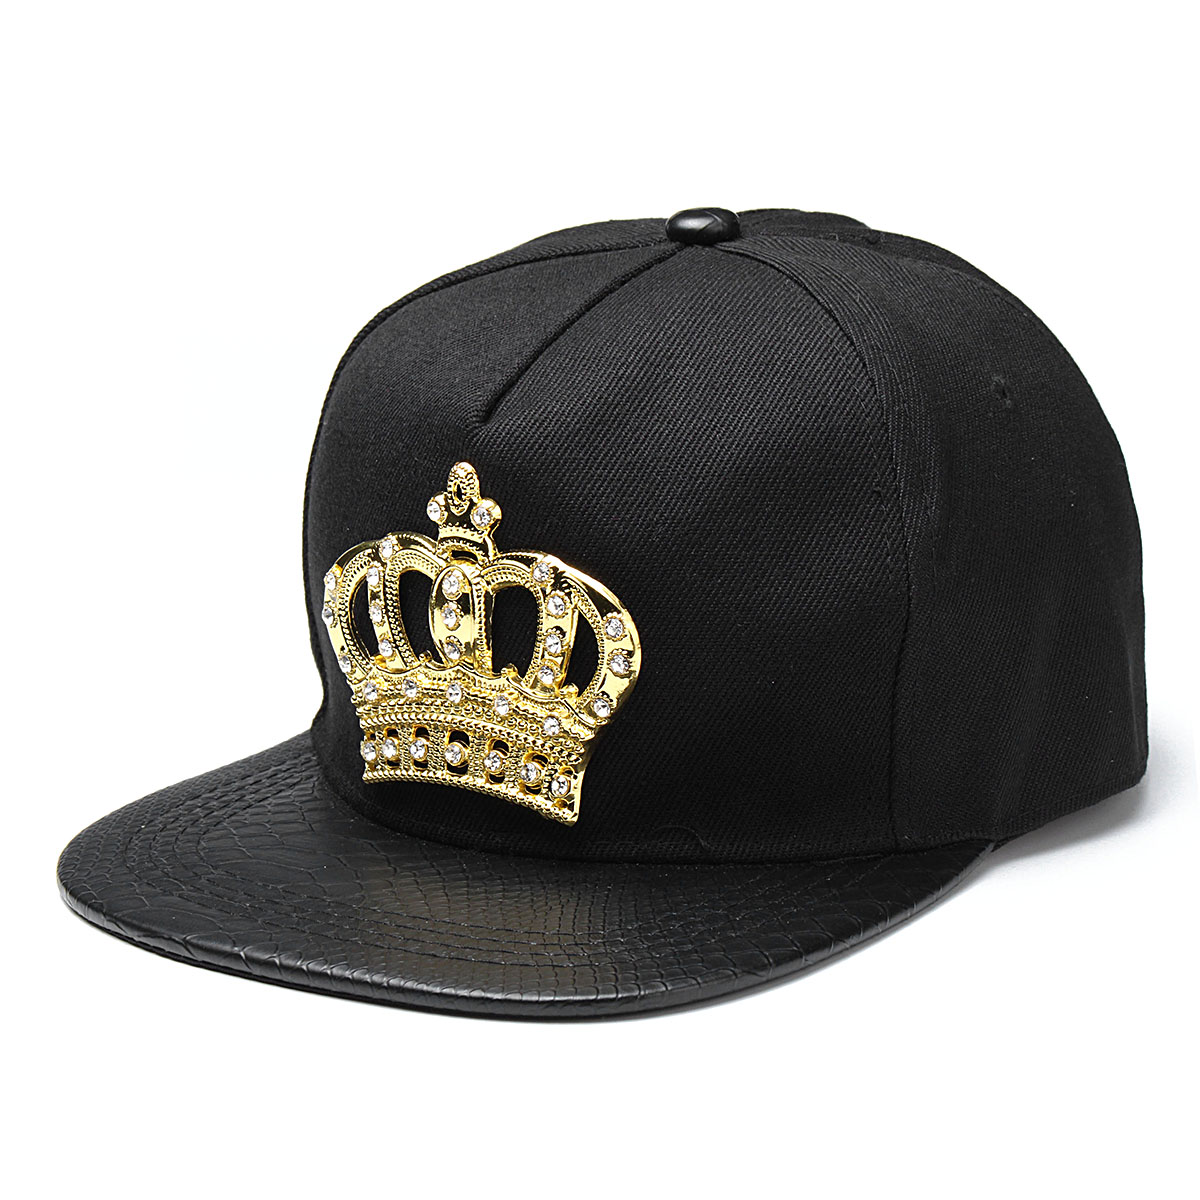 5eead57641b50 Women Snapback Hats Crown KING Baseball Caps Men Adjustable Hip-hop Hats